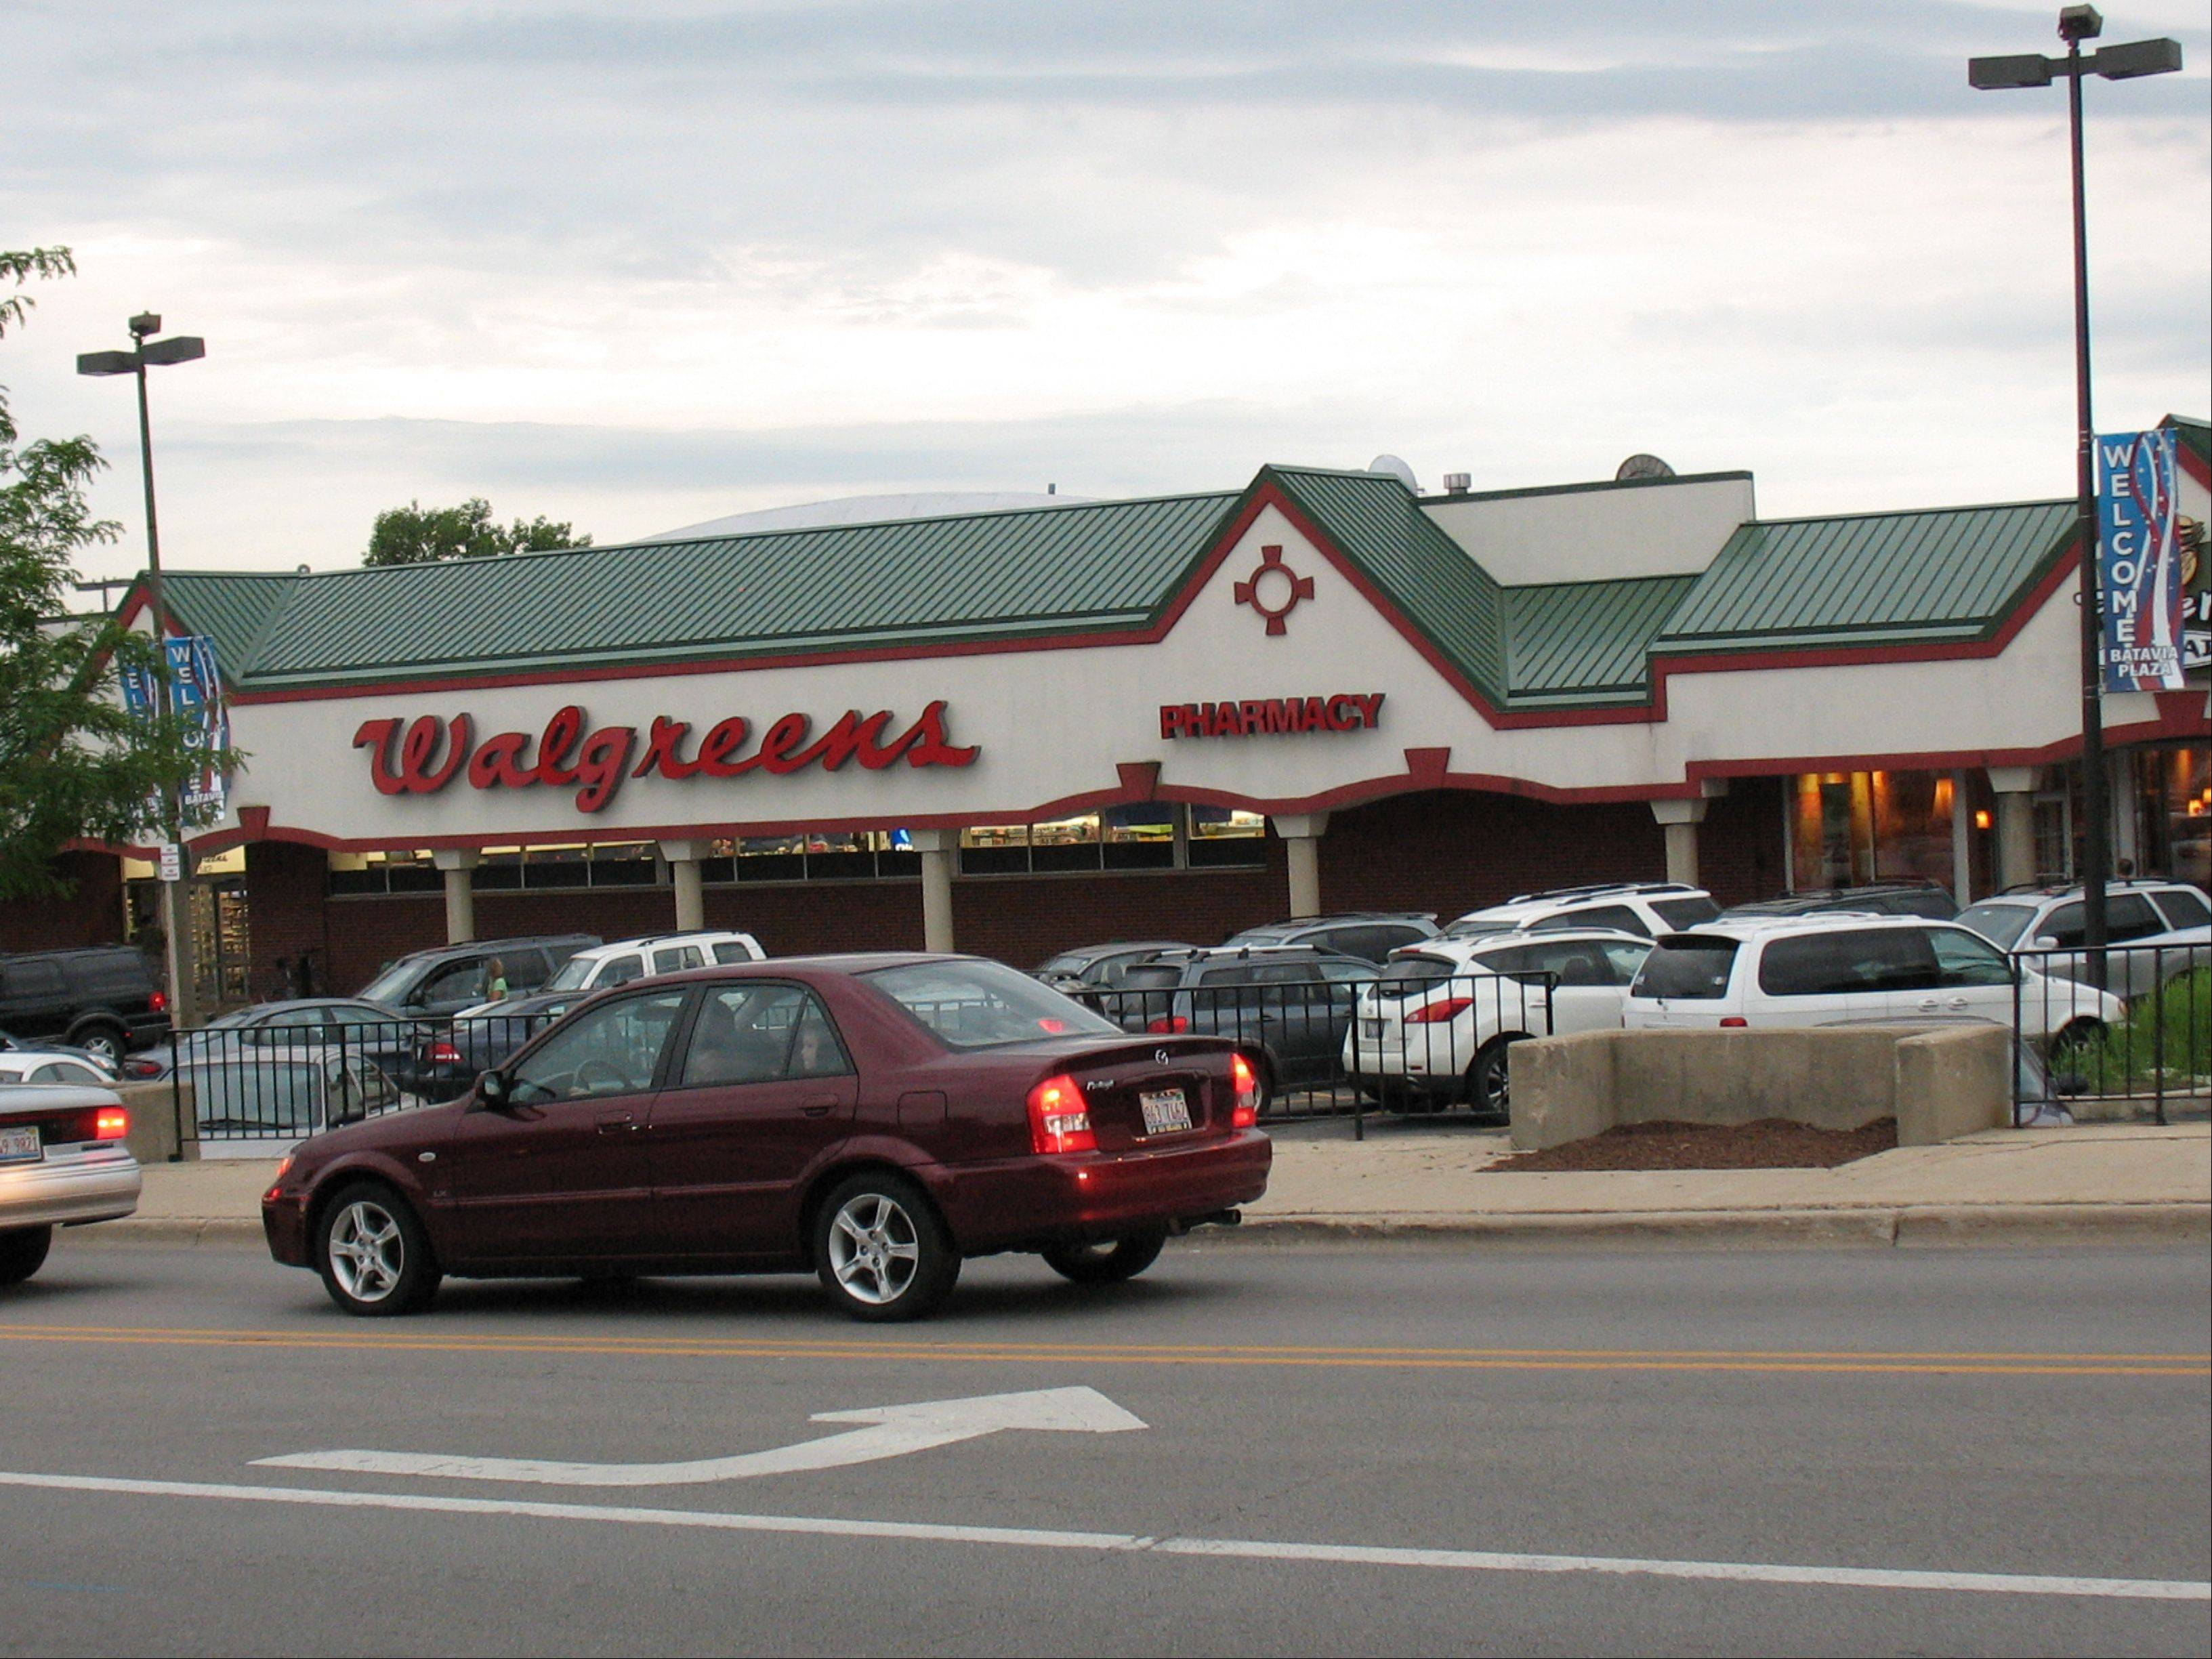 Deerfield-based Walgreen�s fiscal second-quarter earnings climbed 11 percent, helped by contributions from European health and beauty retailer Alliance Boots, a business sale gain, and its new contract with Express Scripts Holding Co.